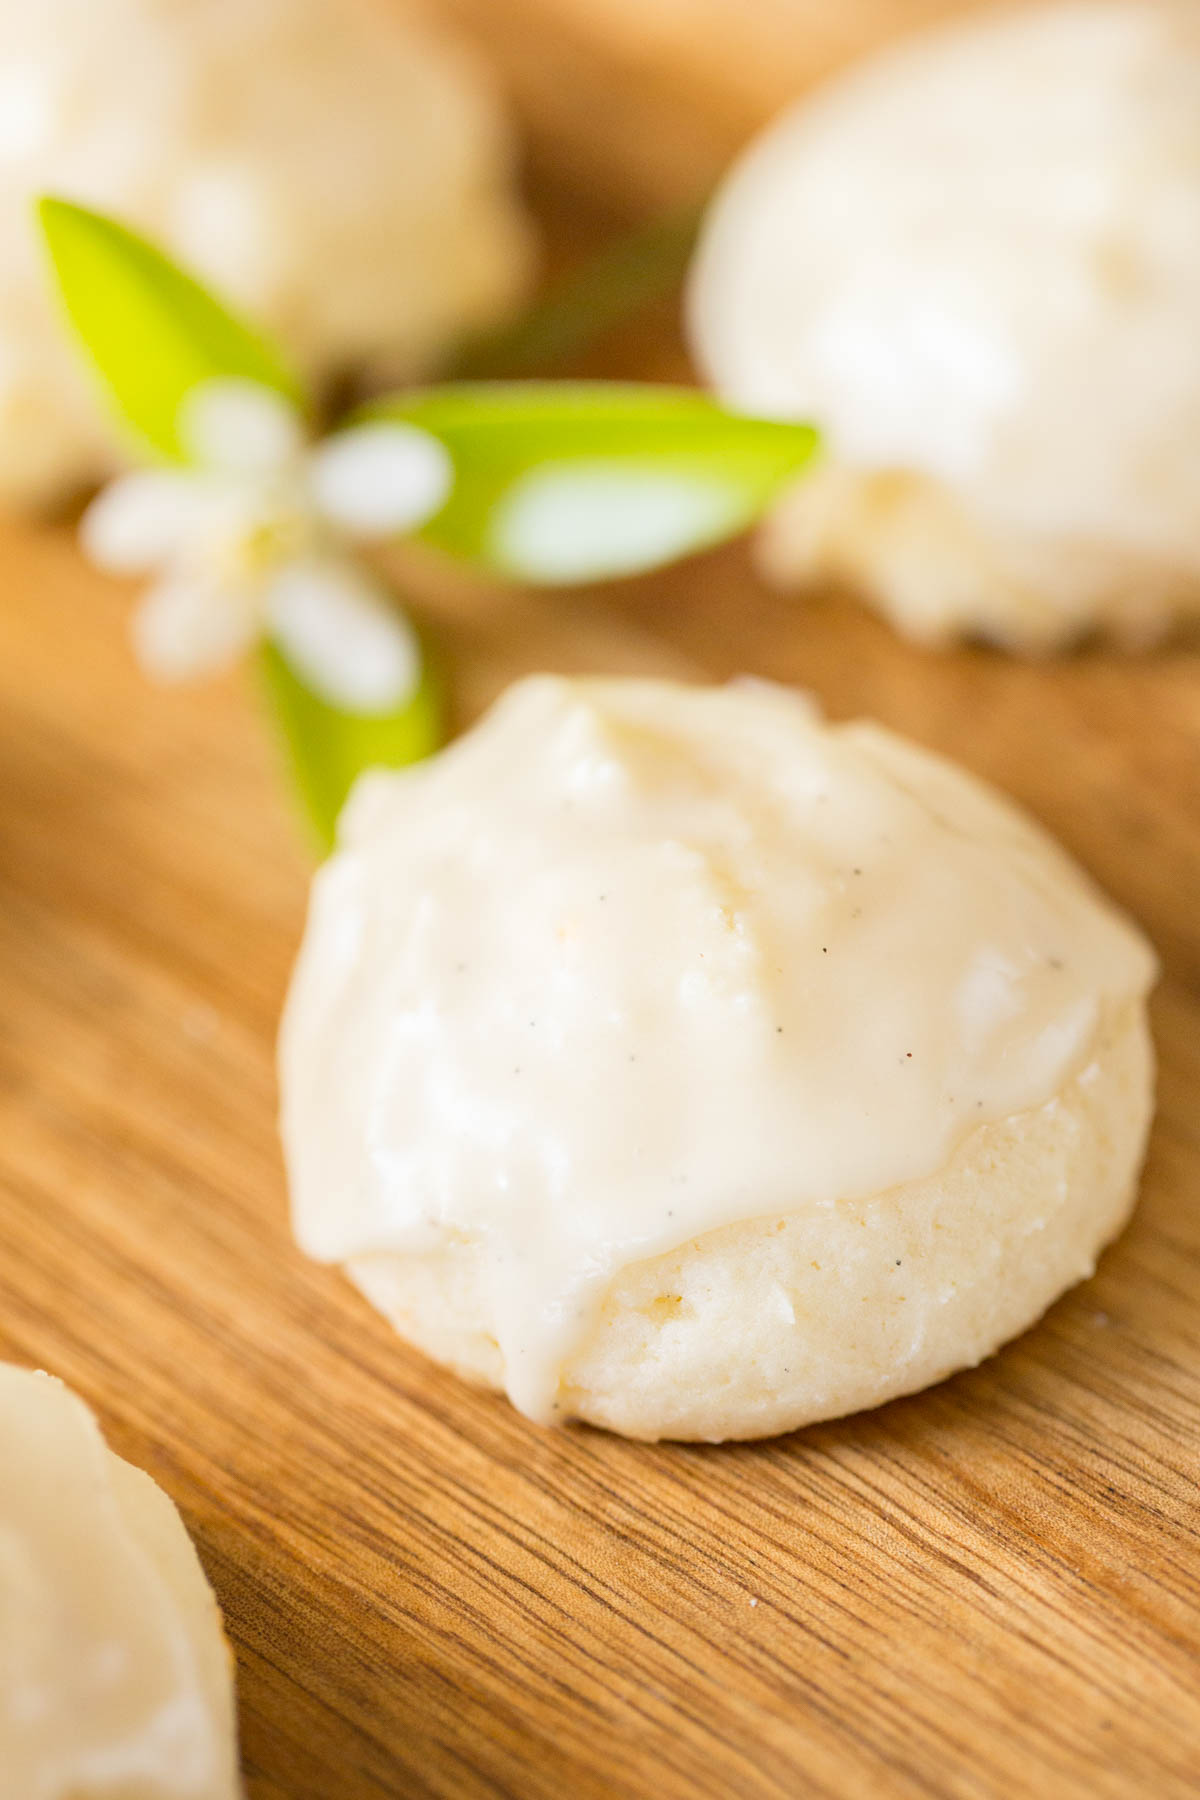 A close up shot of an Orange Ricotta Cookie with a vanilla glaze on top.